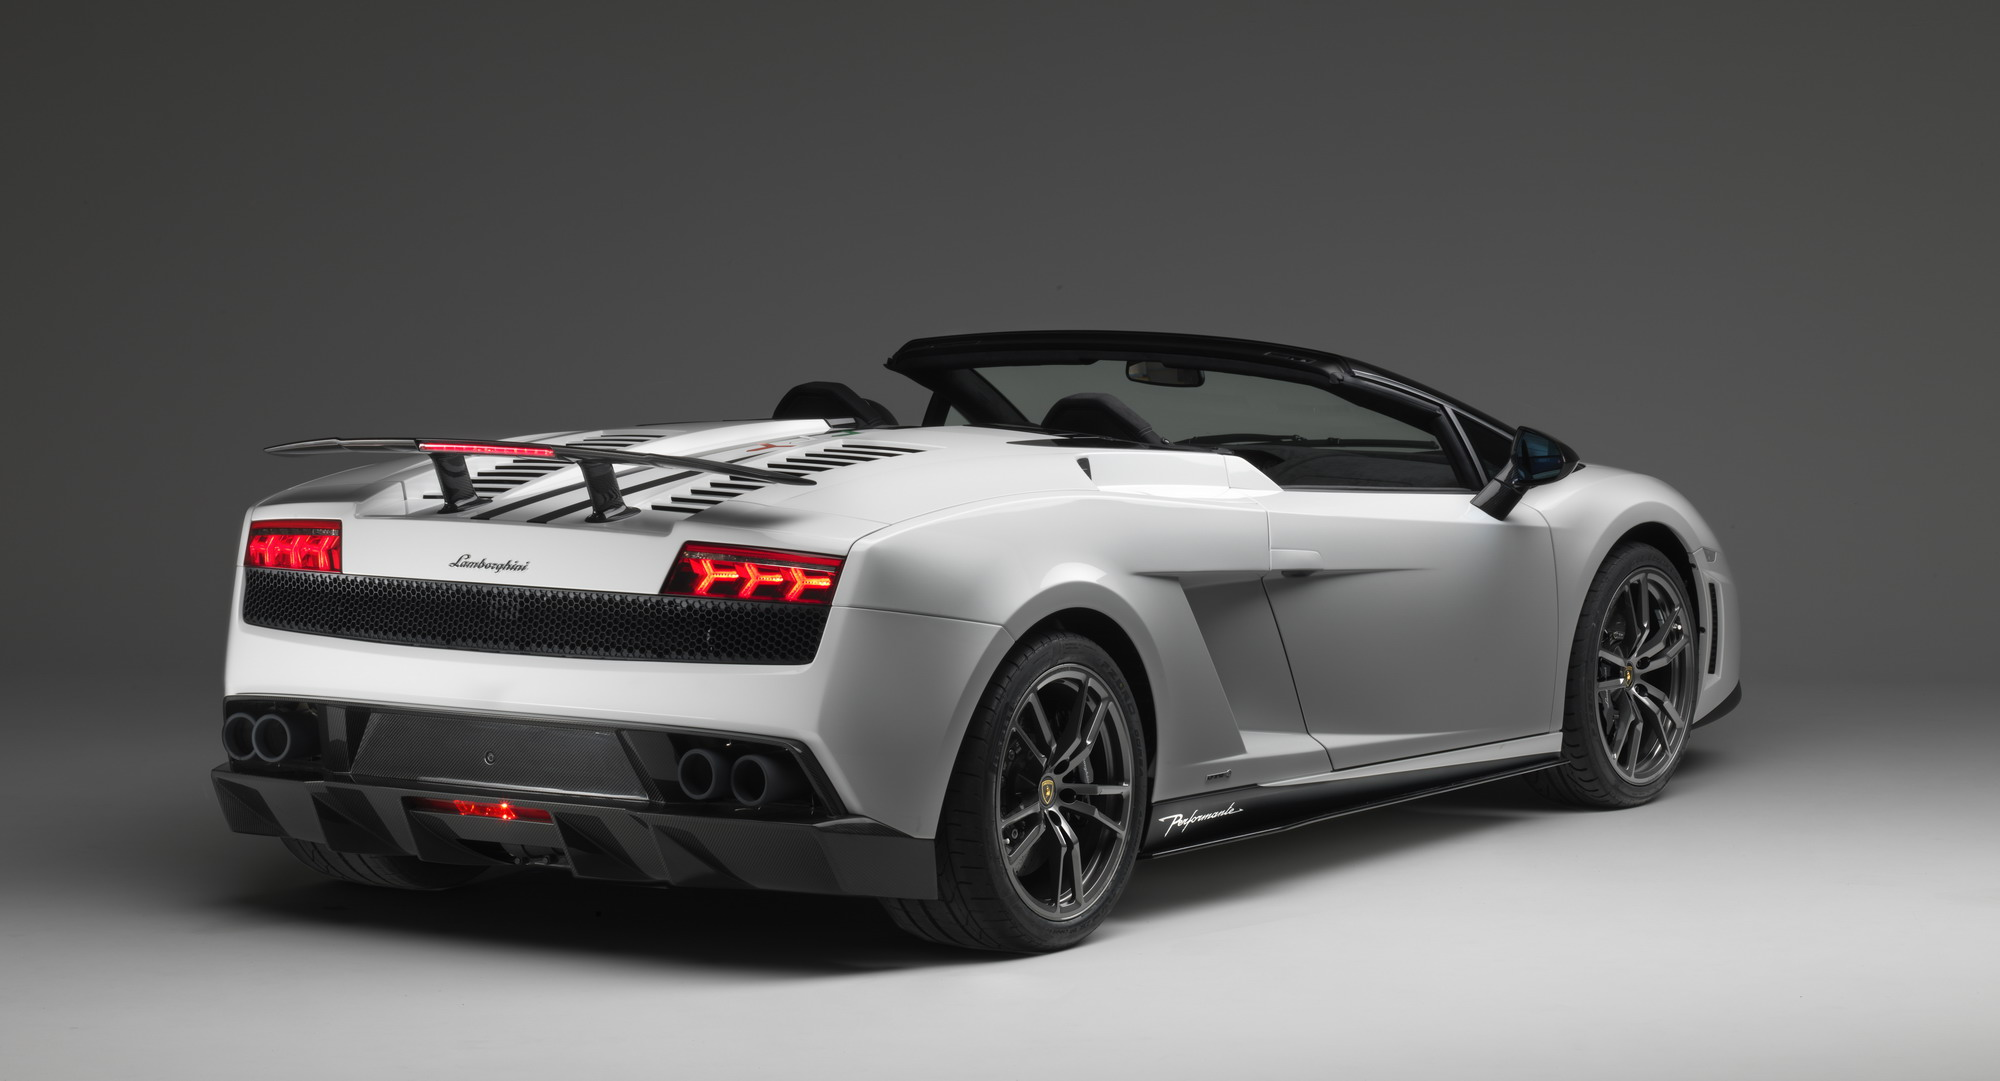 Elegant 2012 Lamborghini Gallardo LP 570 4 Spyder Performante | Top Speed. »